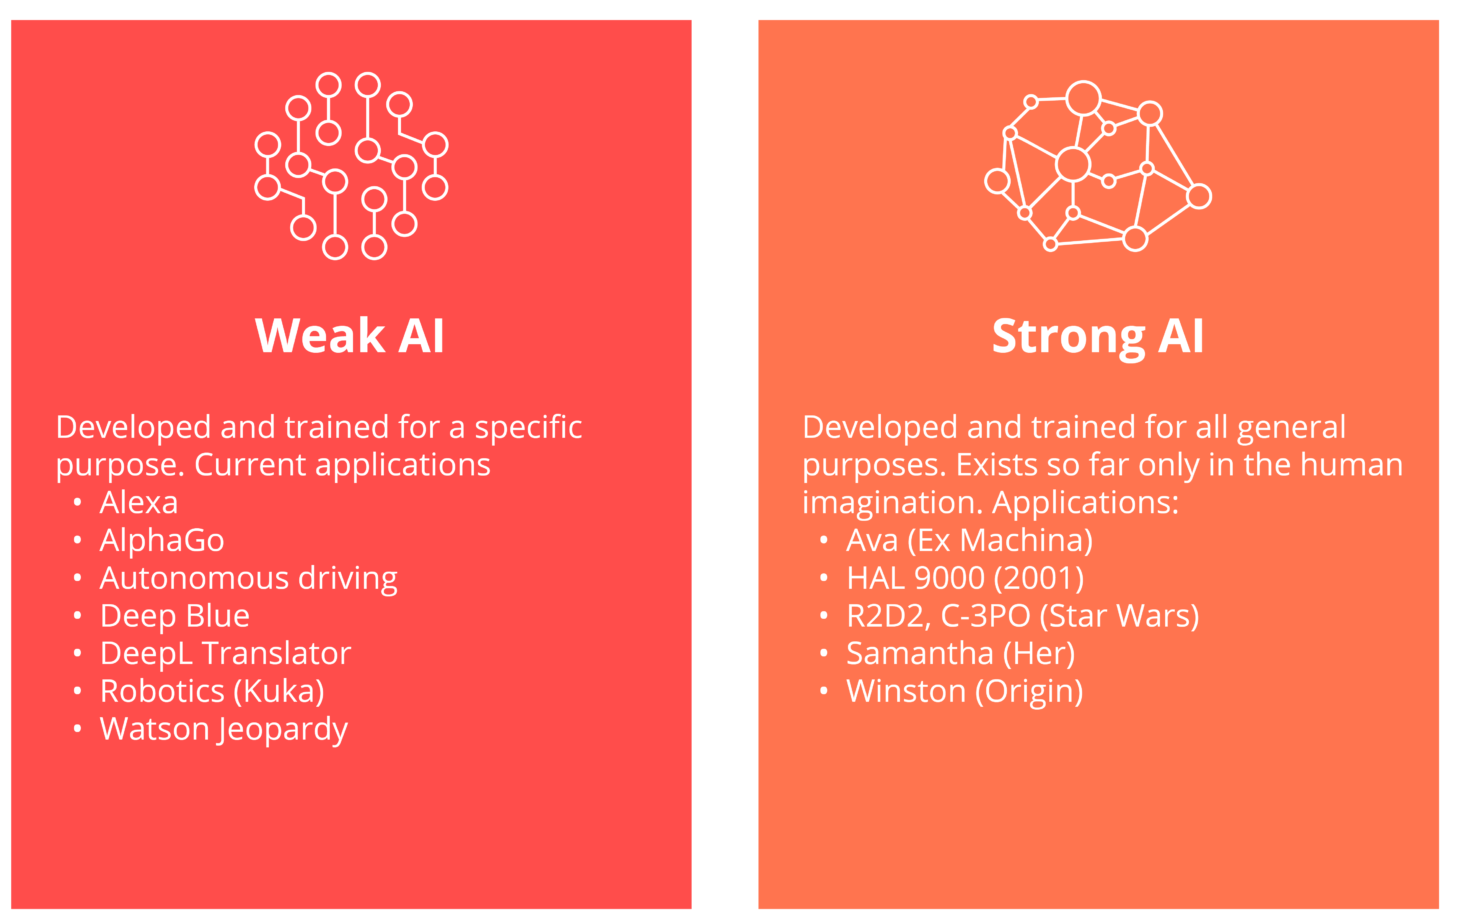 This chart contrasts strong and weak AI.